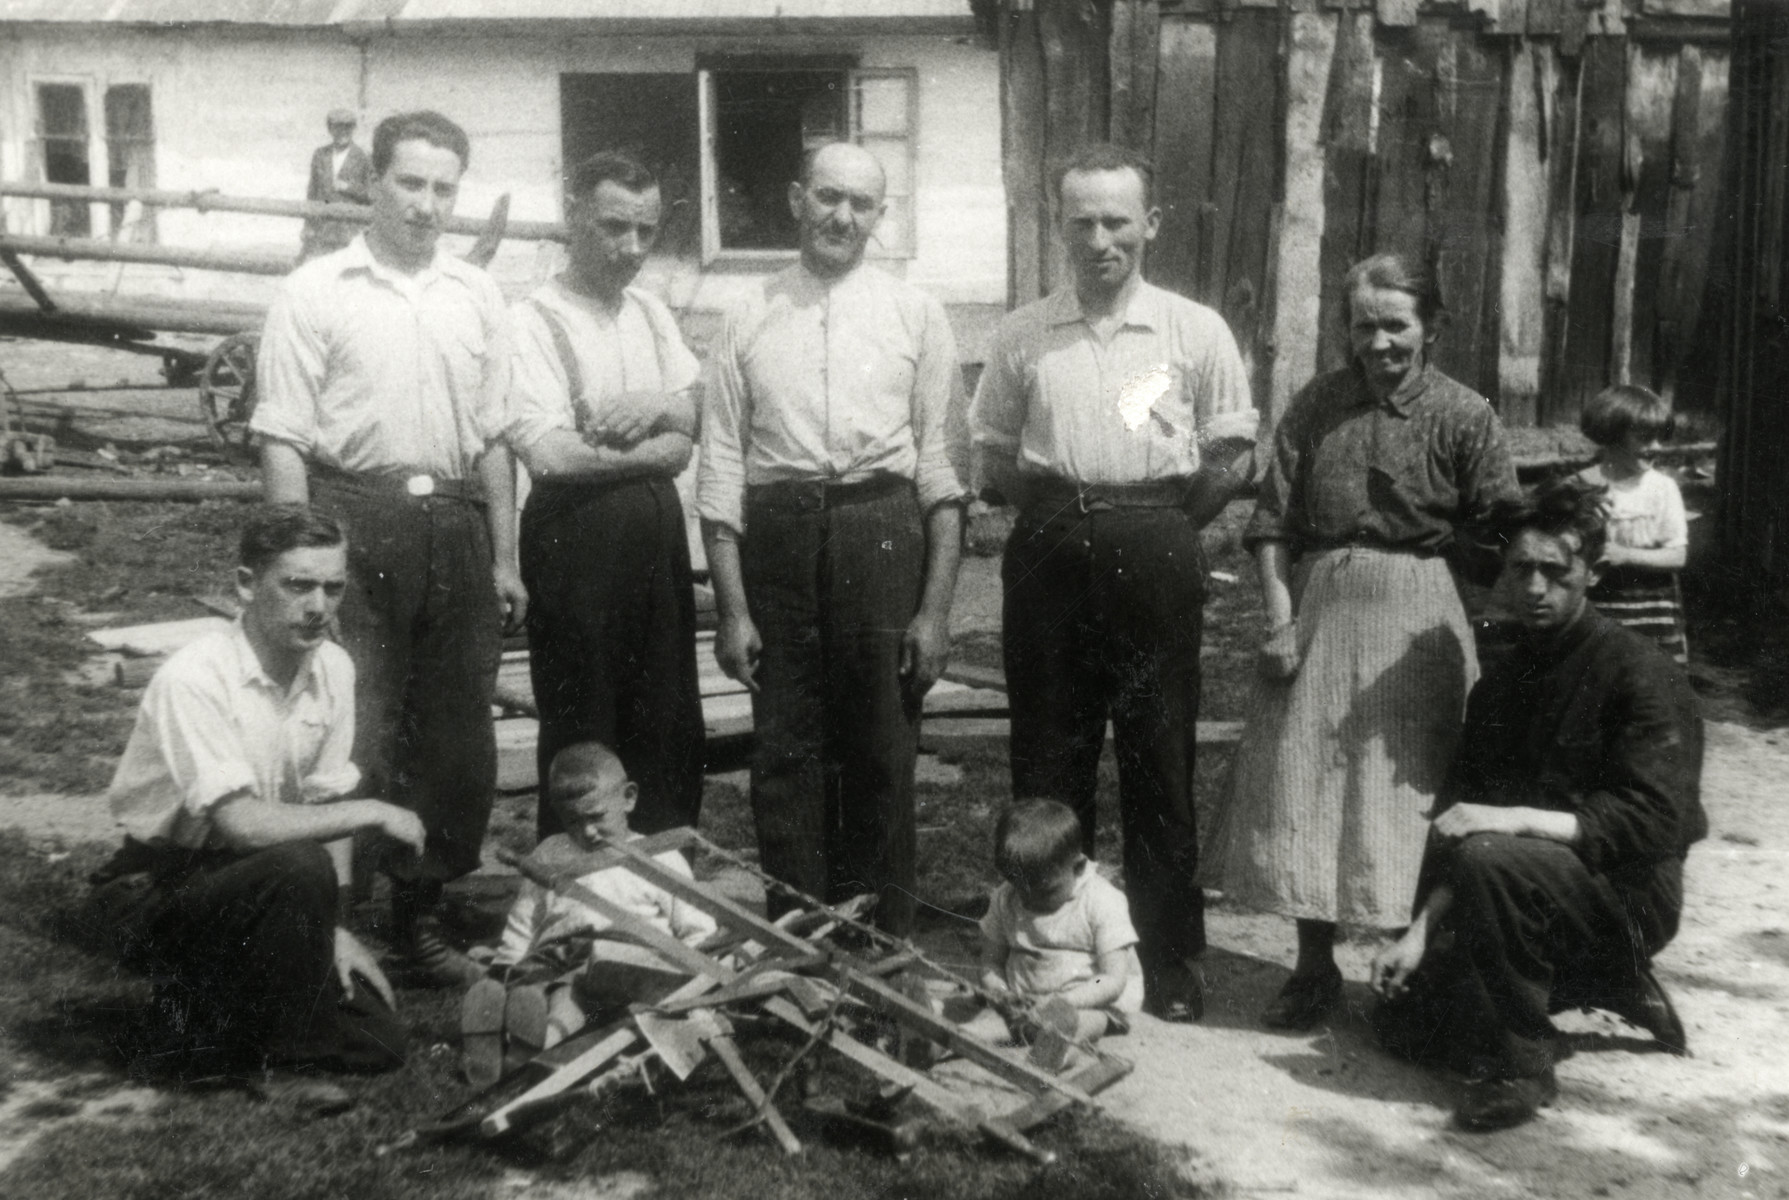 Chaim Leichter (kneeling left) poses with other workers at a workshop where he is studying carpentry.